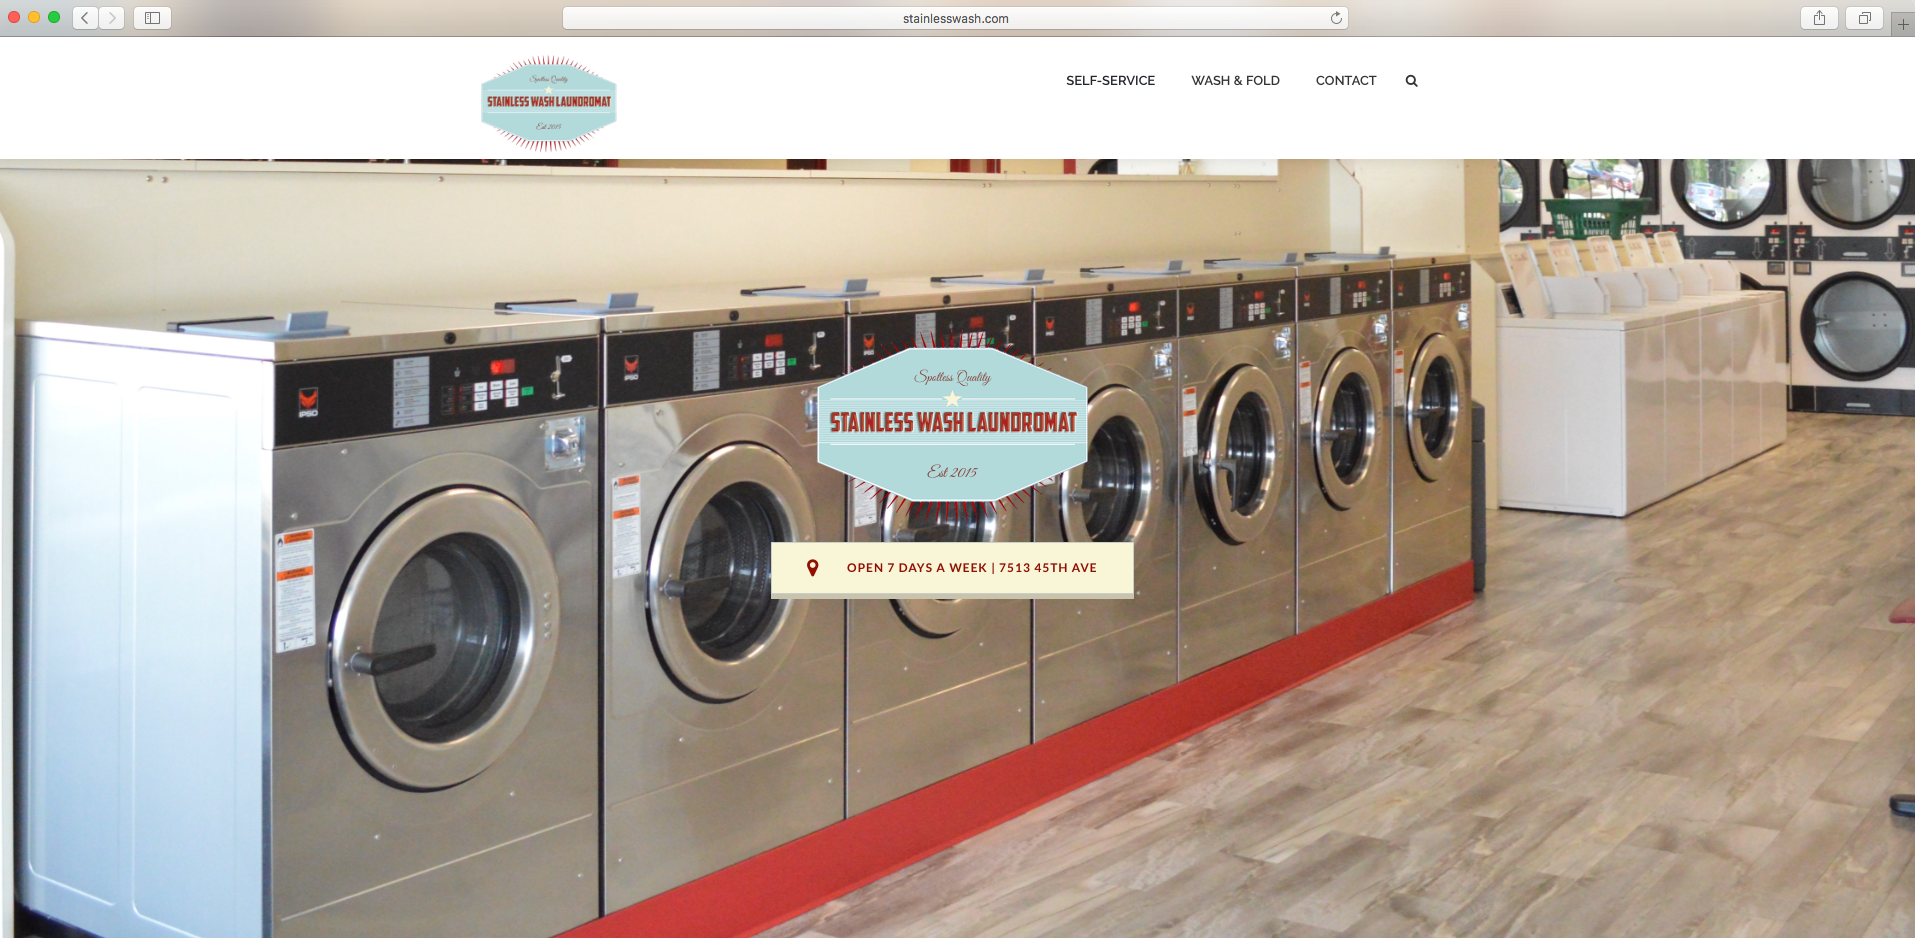 Stainless Wash Homepage